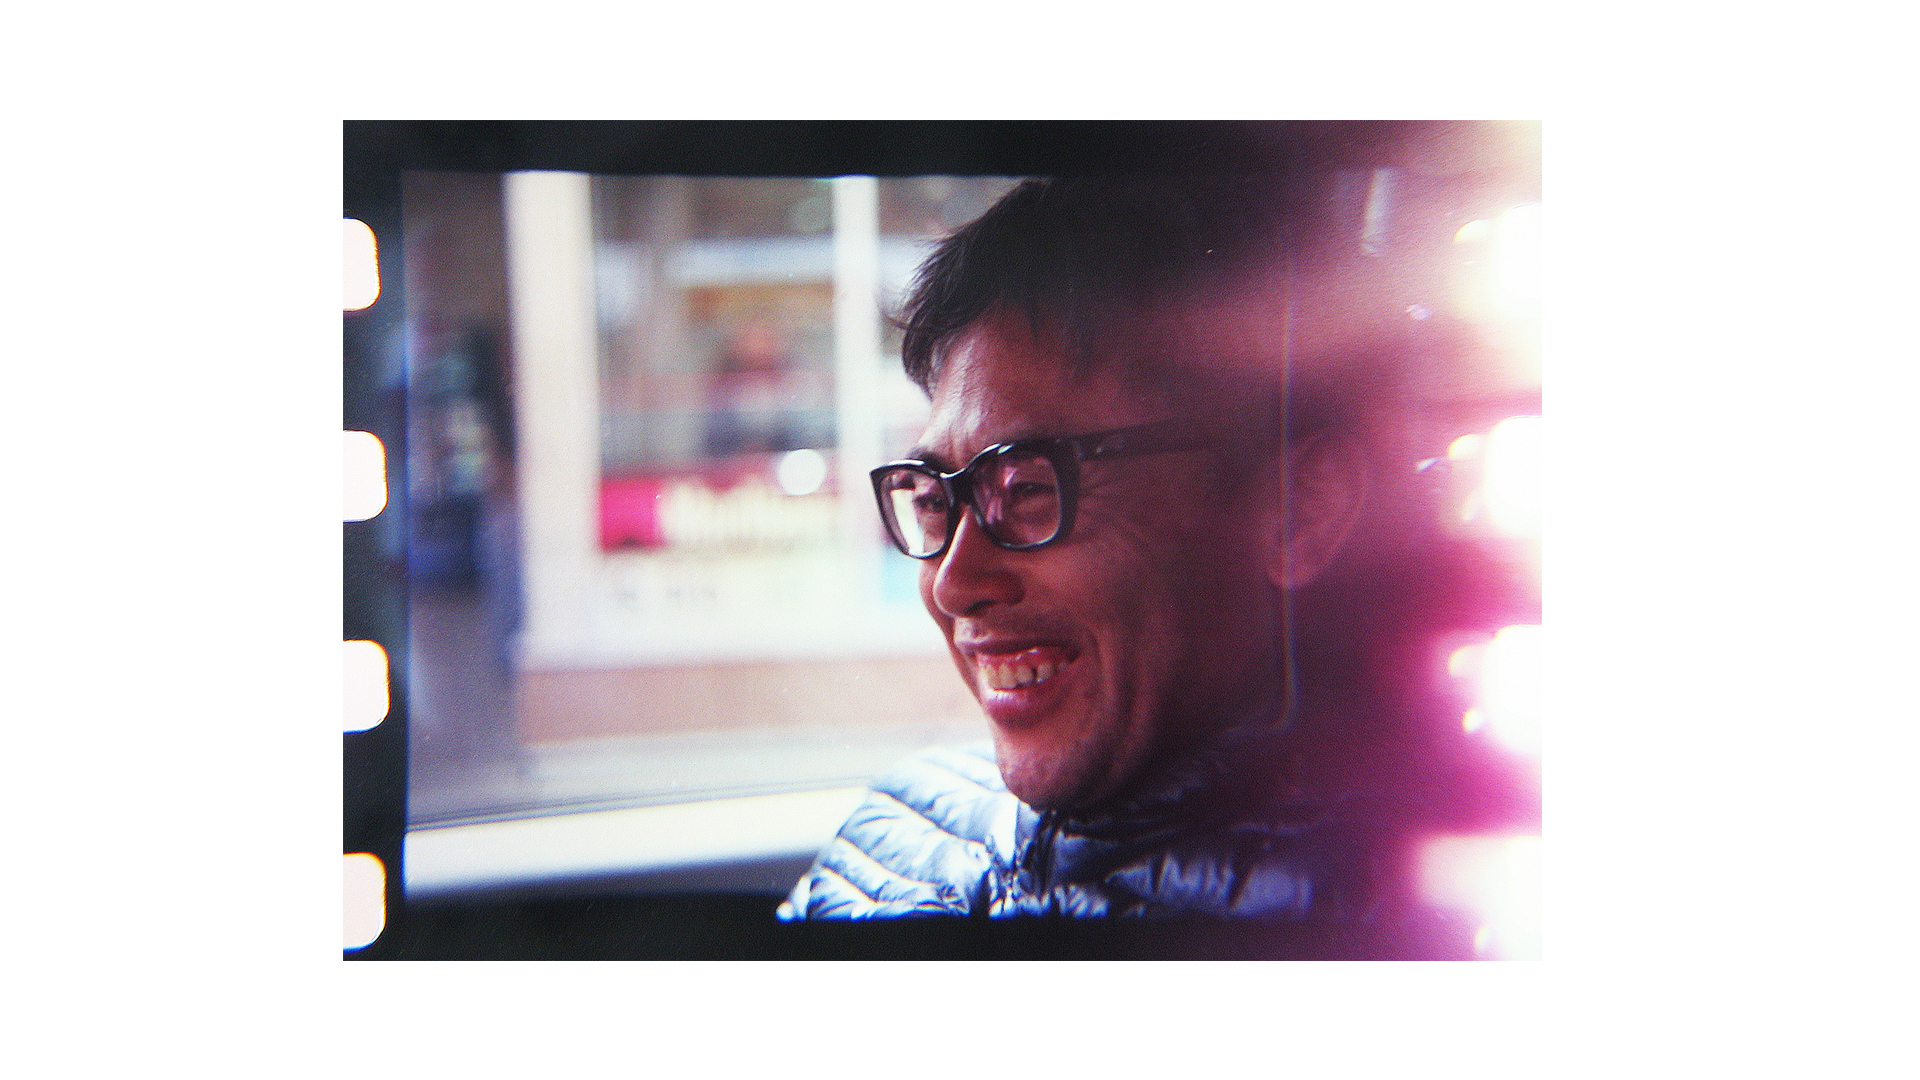 "My Favorite portrait of Taro. We had just been ruthlessly cut-off in traffic by a dude in a speeding white mustang on the drive up to Bend, OR and Taro kinda giggled and just said ""America classic."" I dunno if he meant the car or the move."